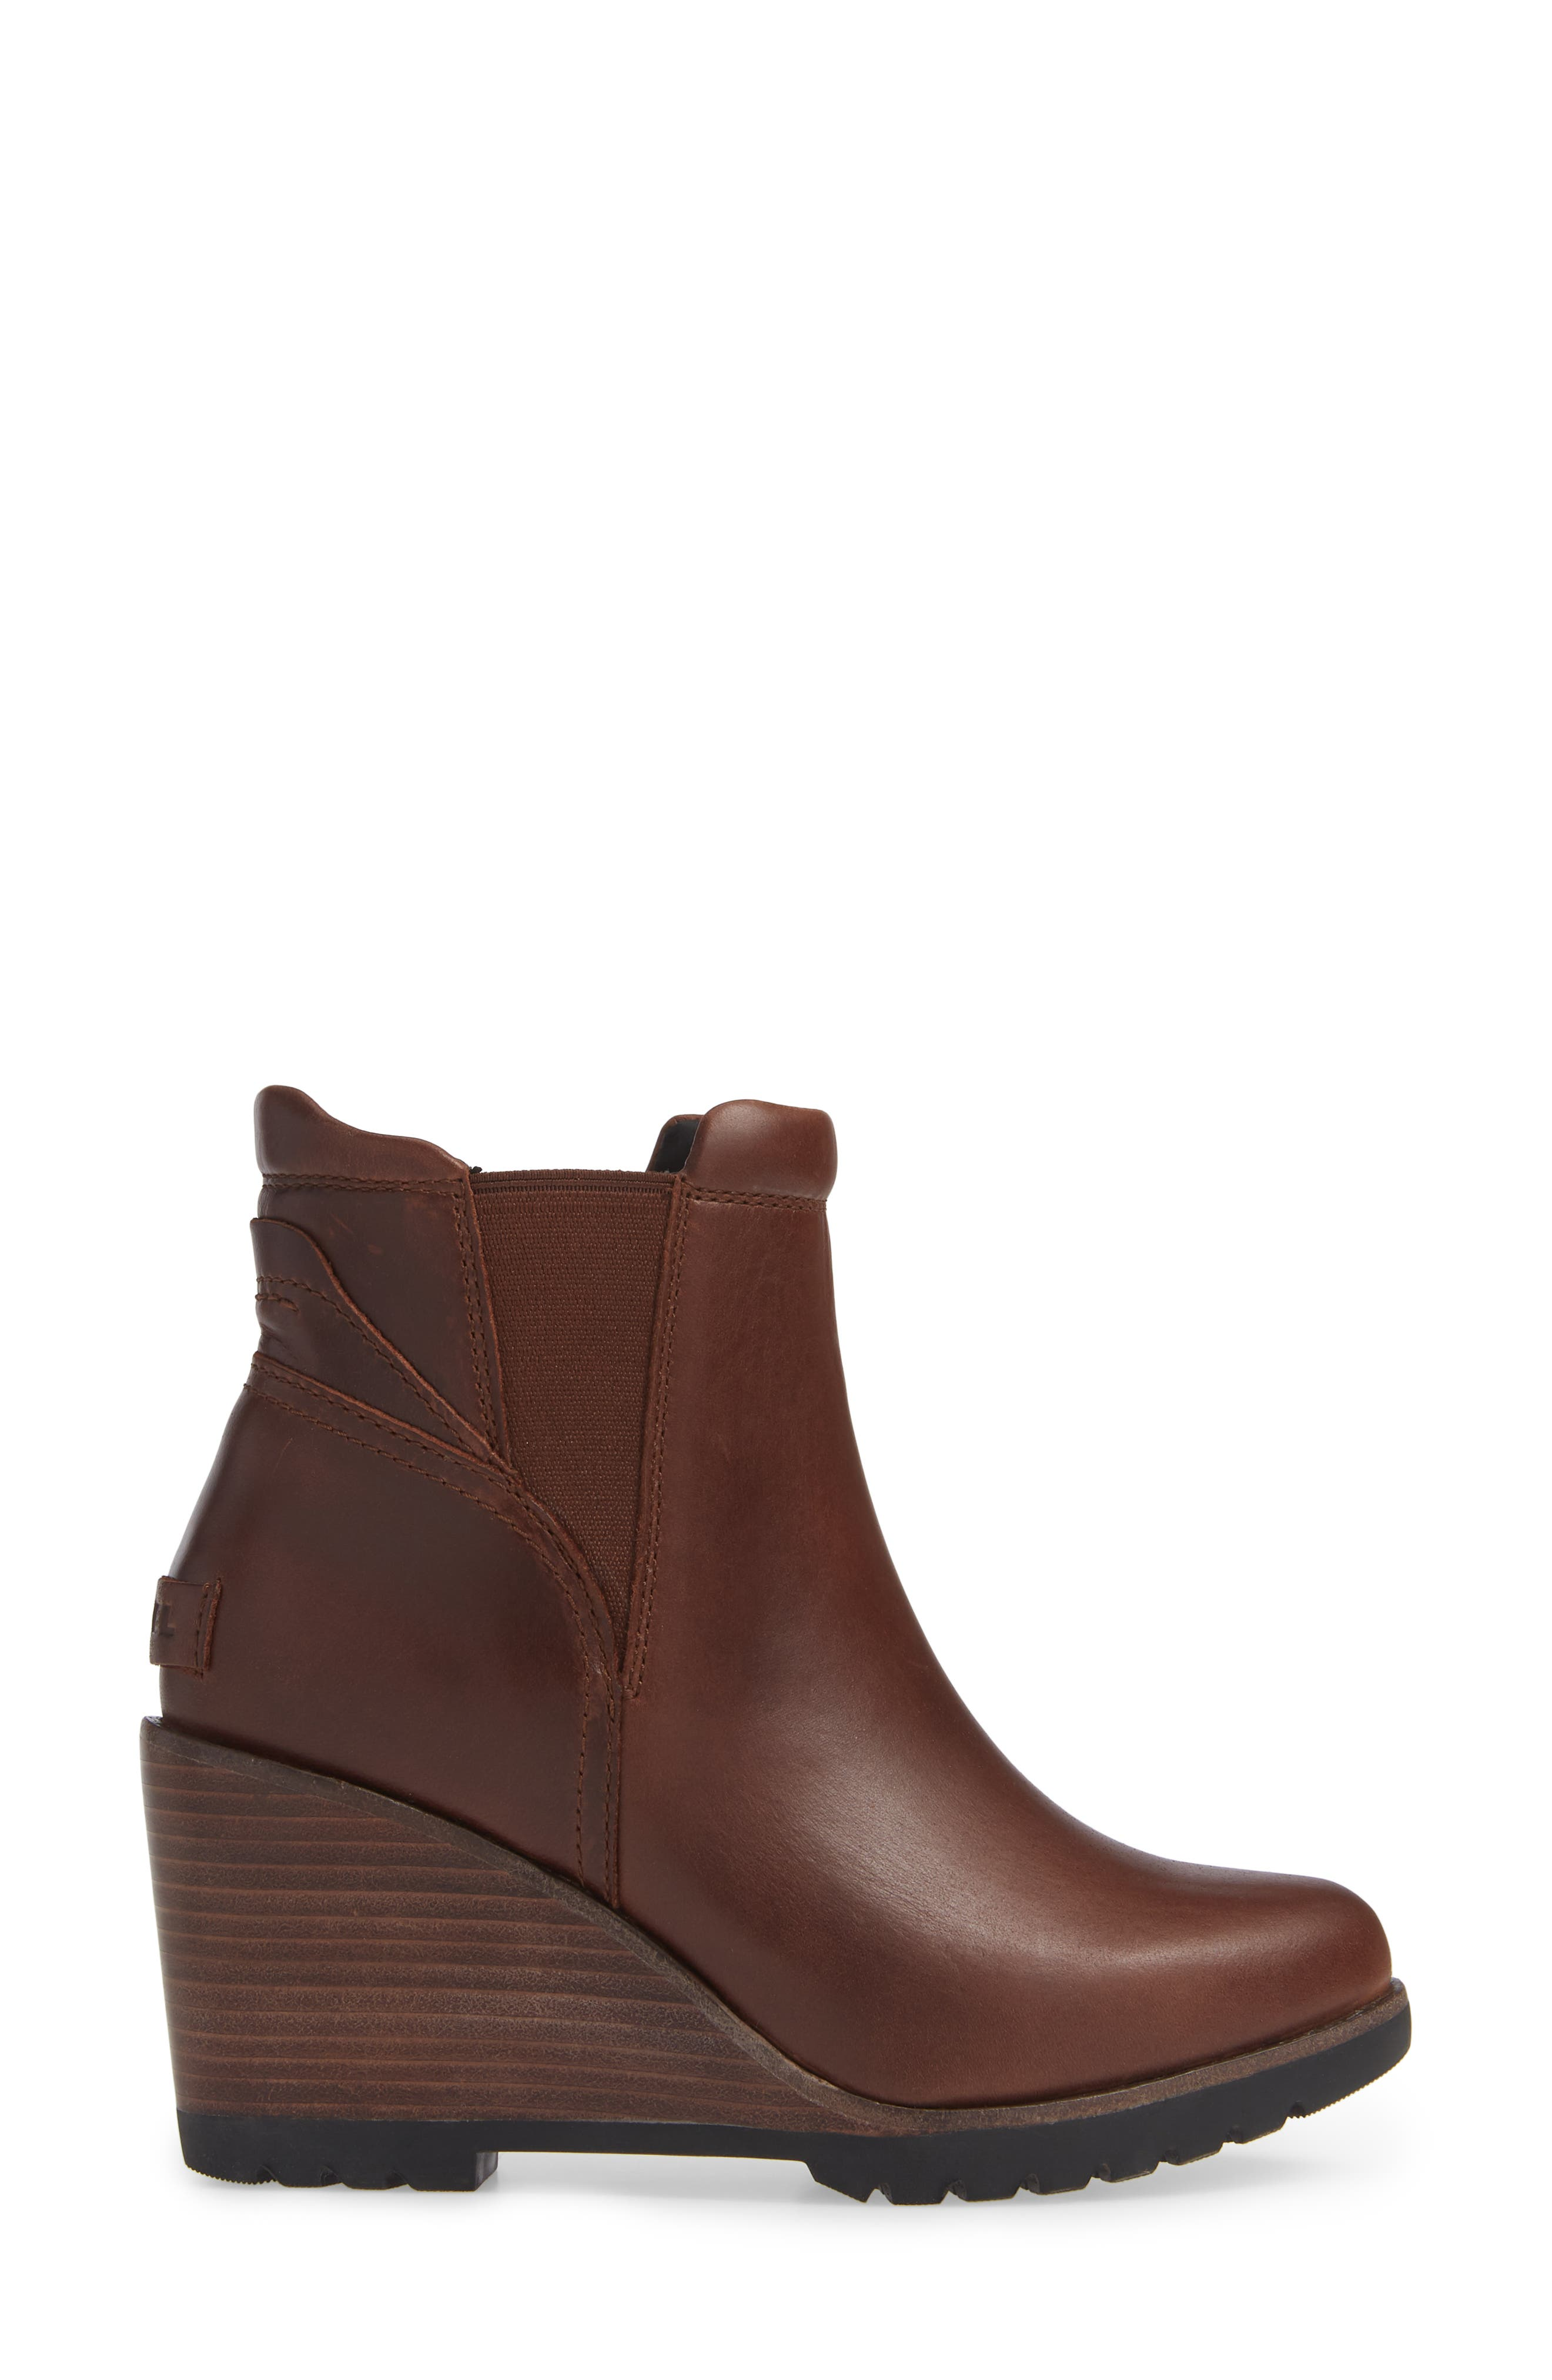 After Hours Chelsea Waterproof Boot,                             Alternate thumbnail 3, color,                             200